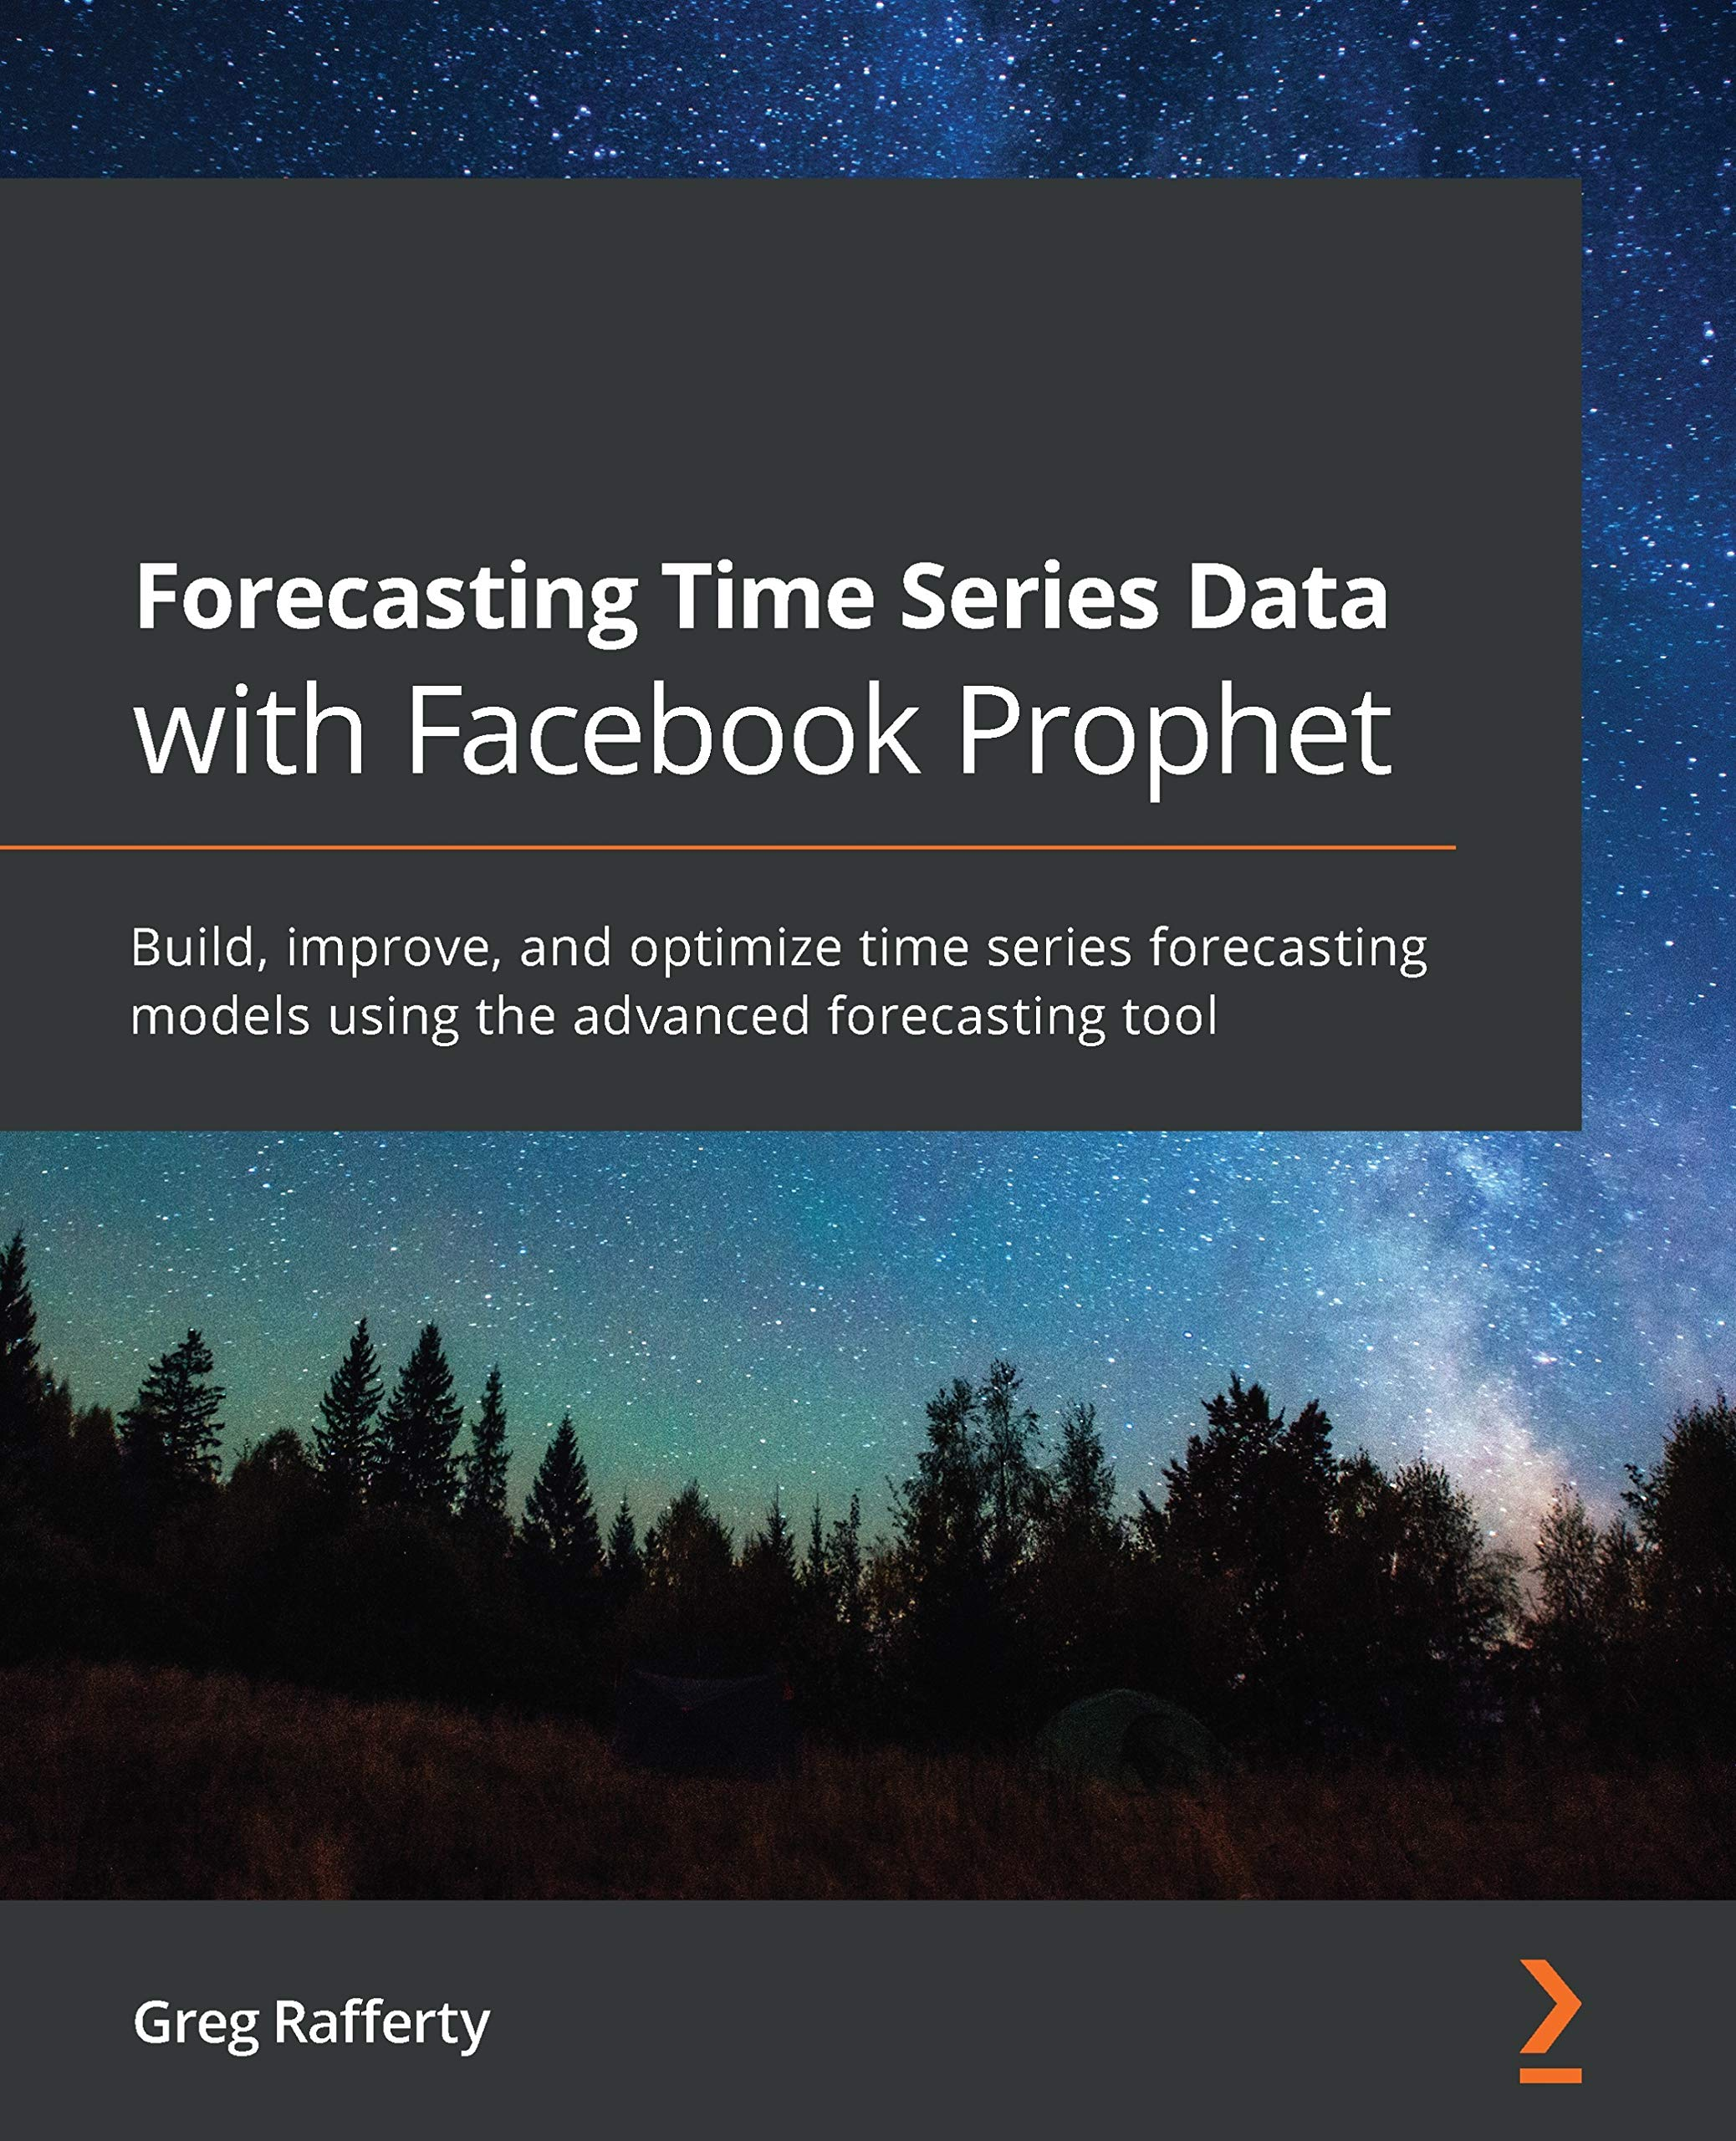 Forecasting Time Series Data with Facebook Prophet: Build, improve, and optimize time series forecasting models using the advanced forecasting tool